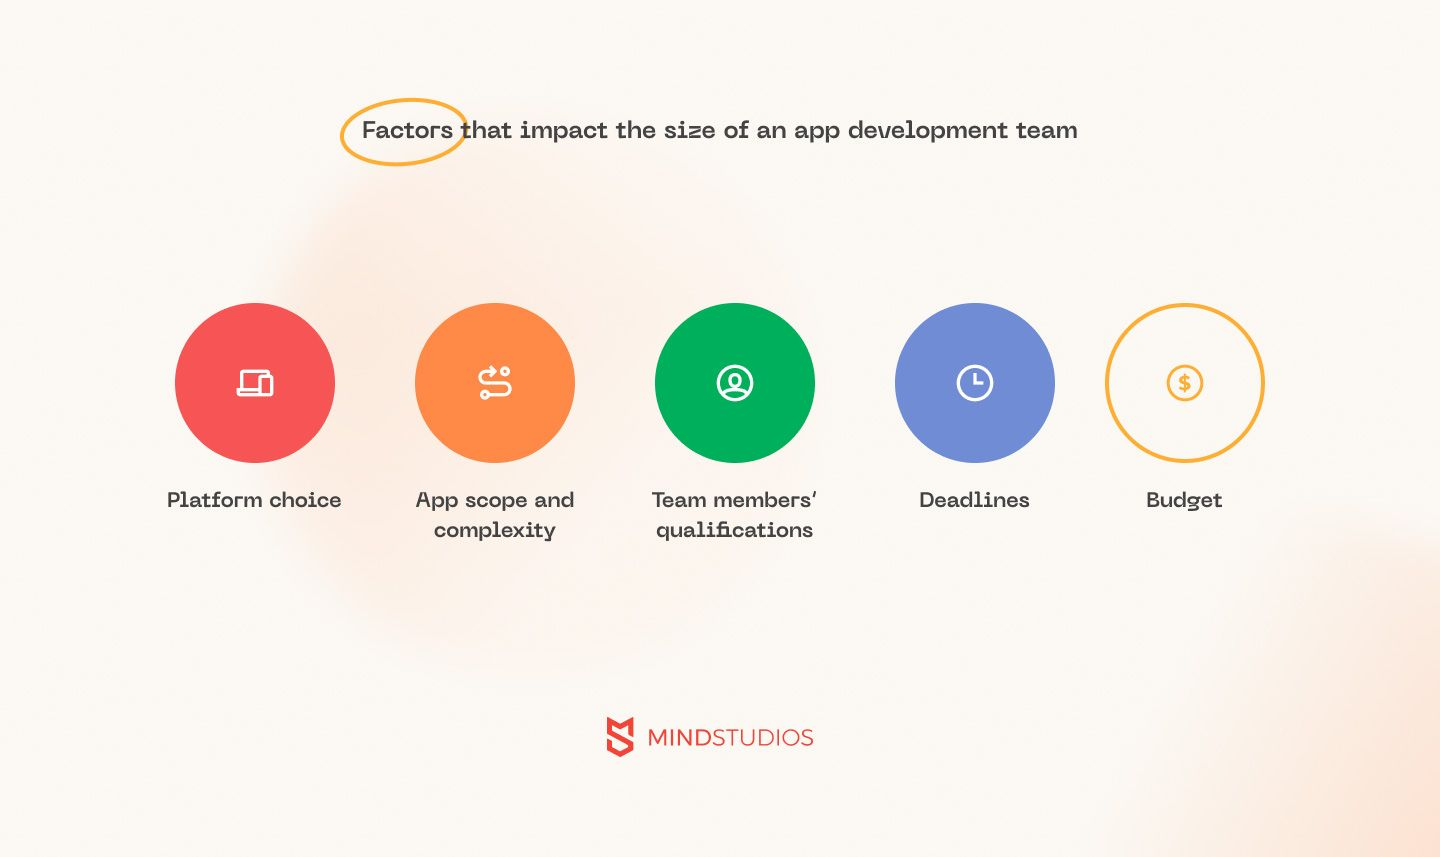 Factors for choosing app development team